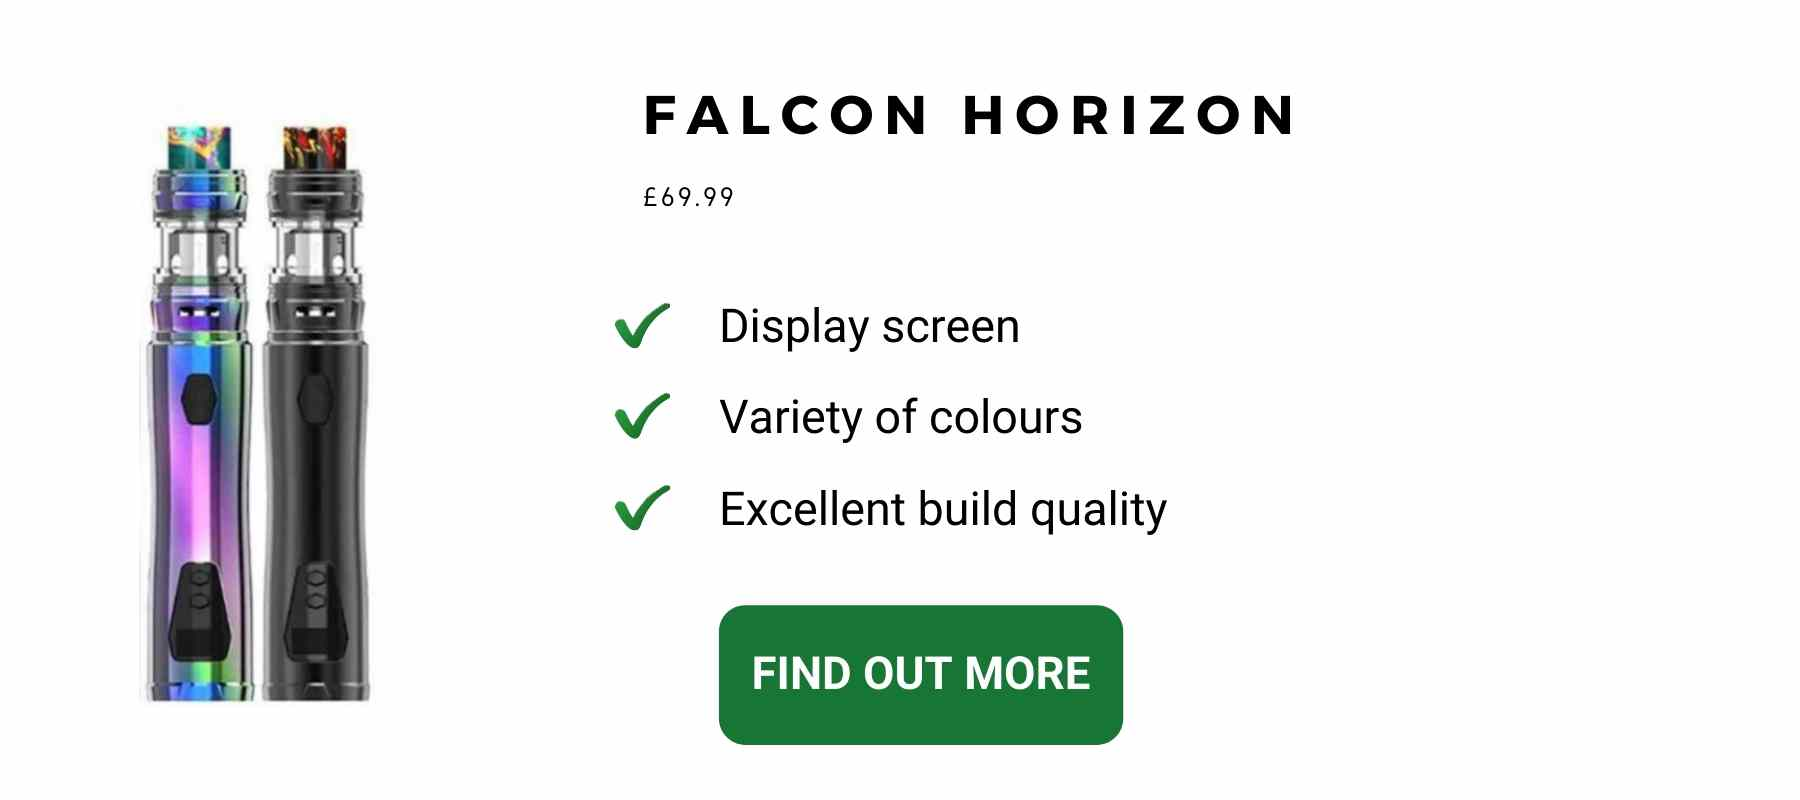 Falcon Horizon